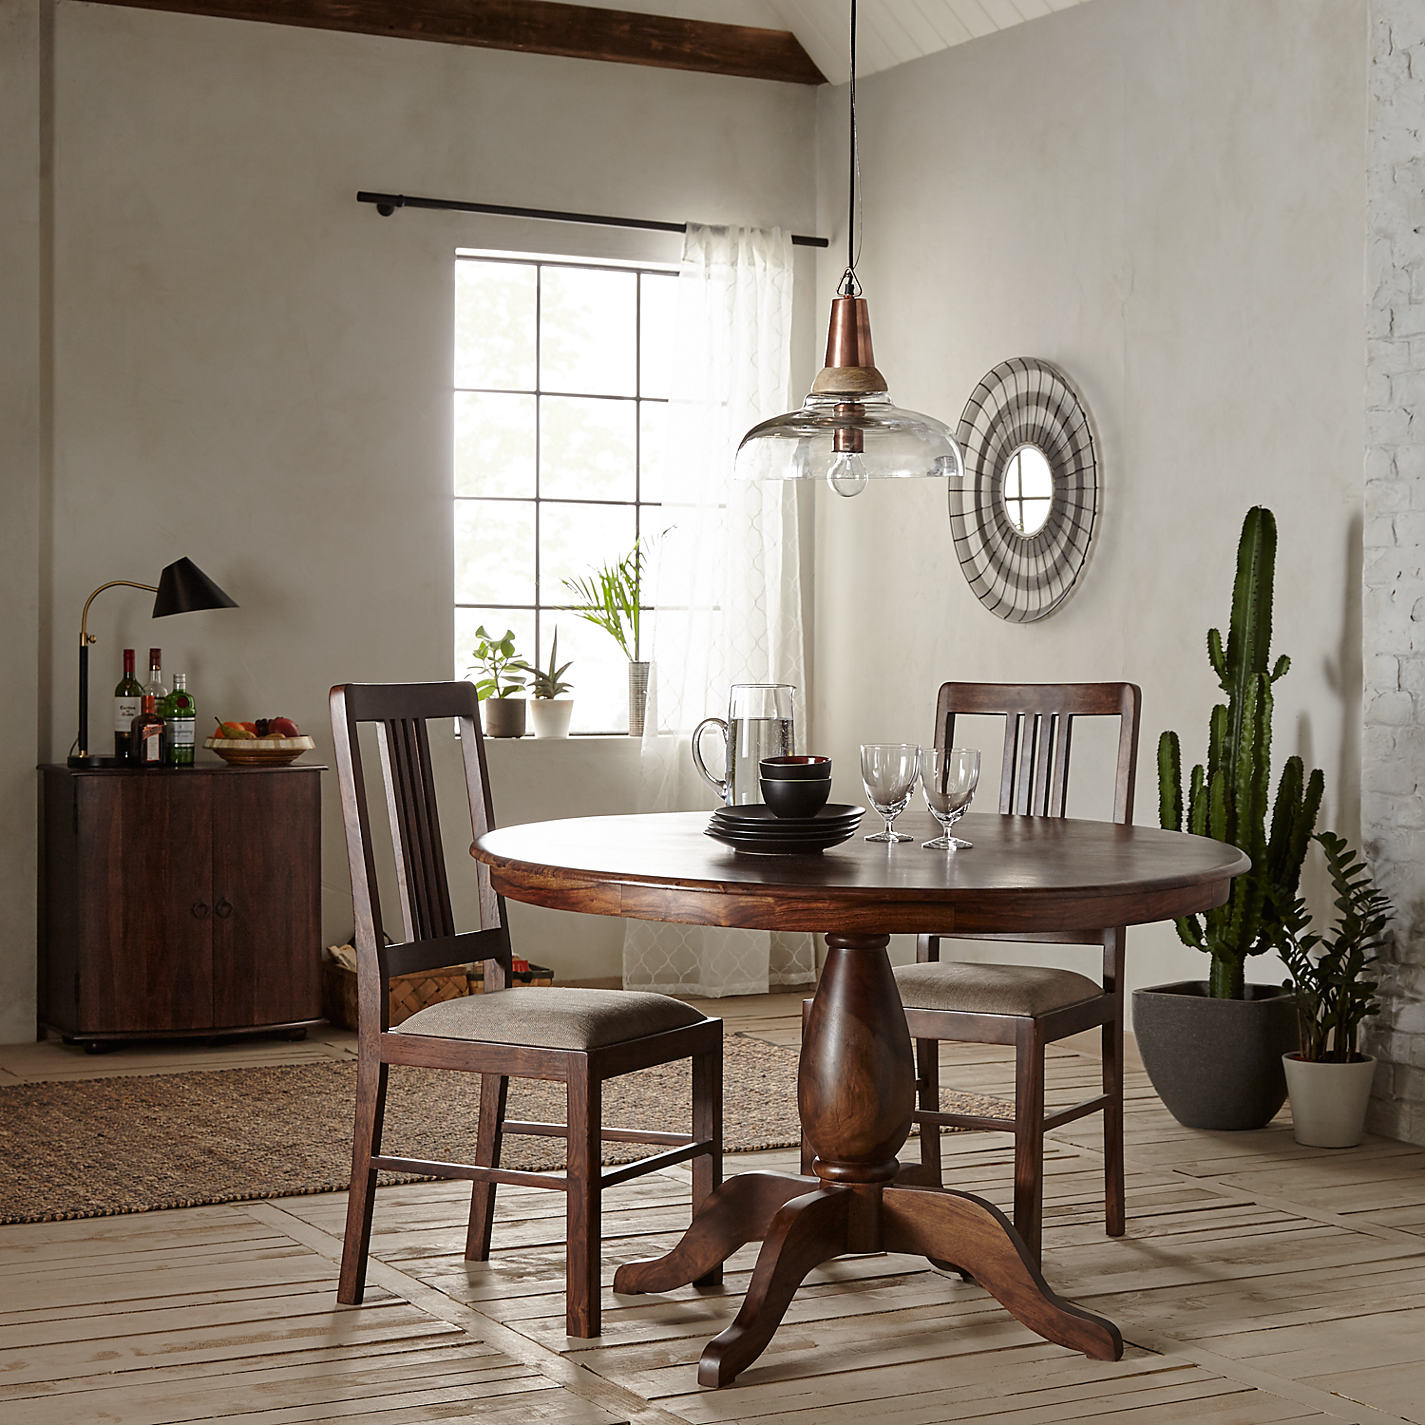 John Lewis Kitchen Furniture Buy John Lewis Maharani Living Dining Room Furniture John Lewis